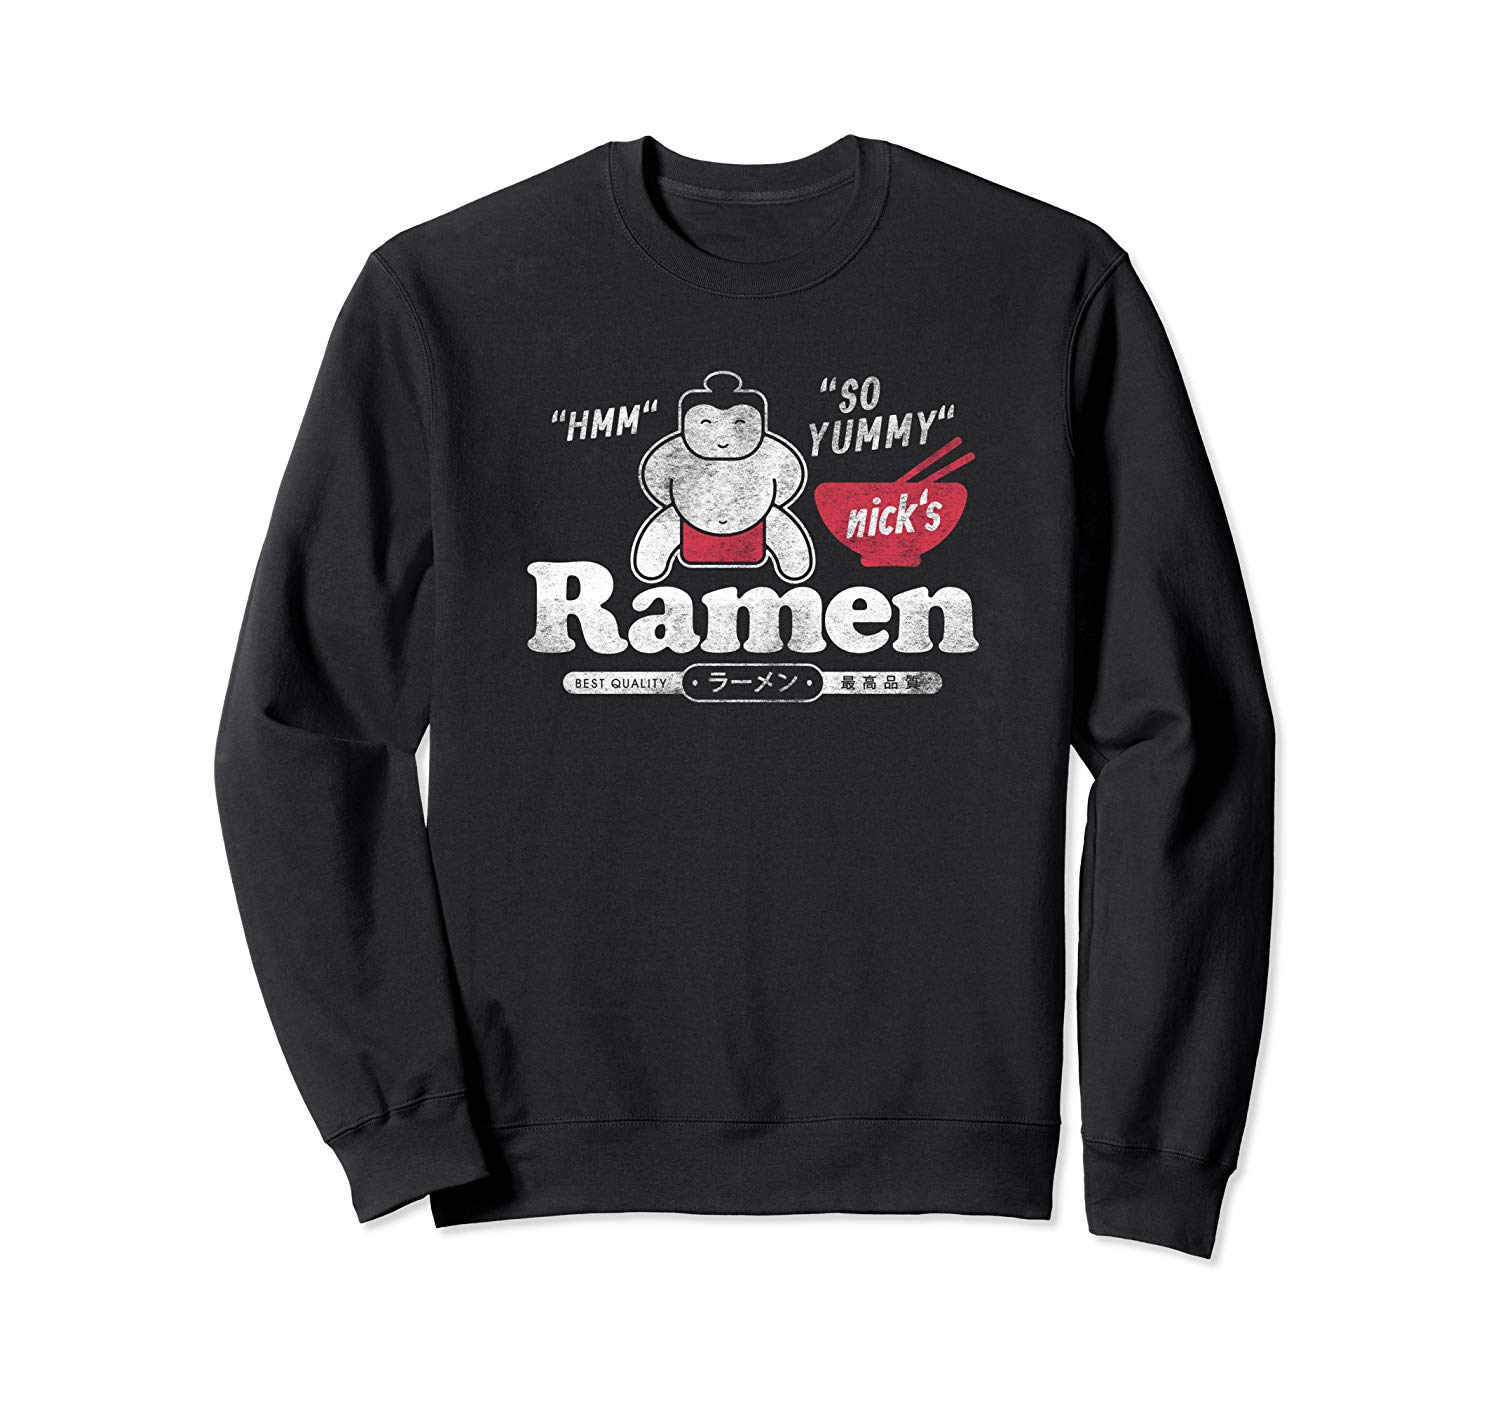 T-Shirt: Nicks Ramen Sumo Japan Nudel Retro Design Sweatshirt